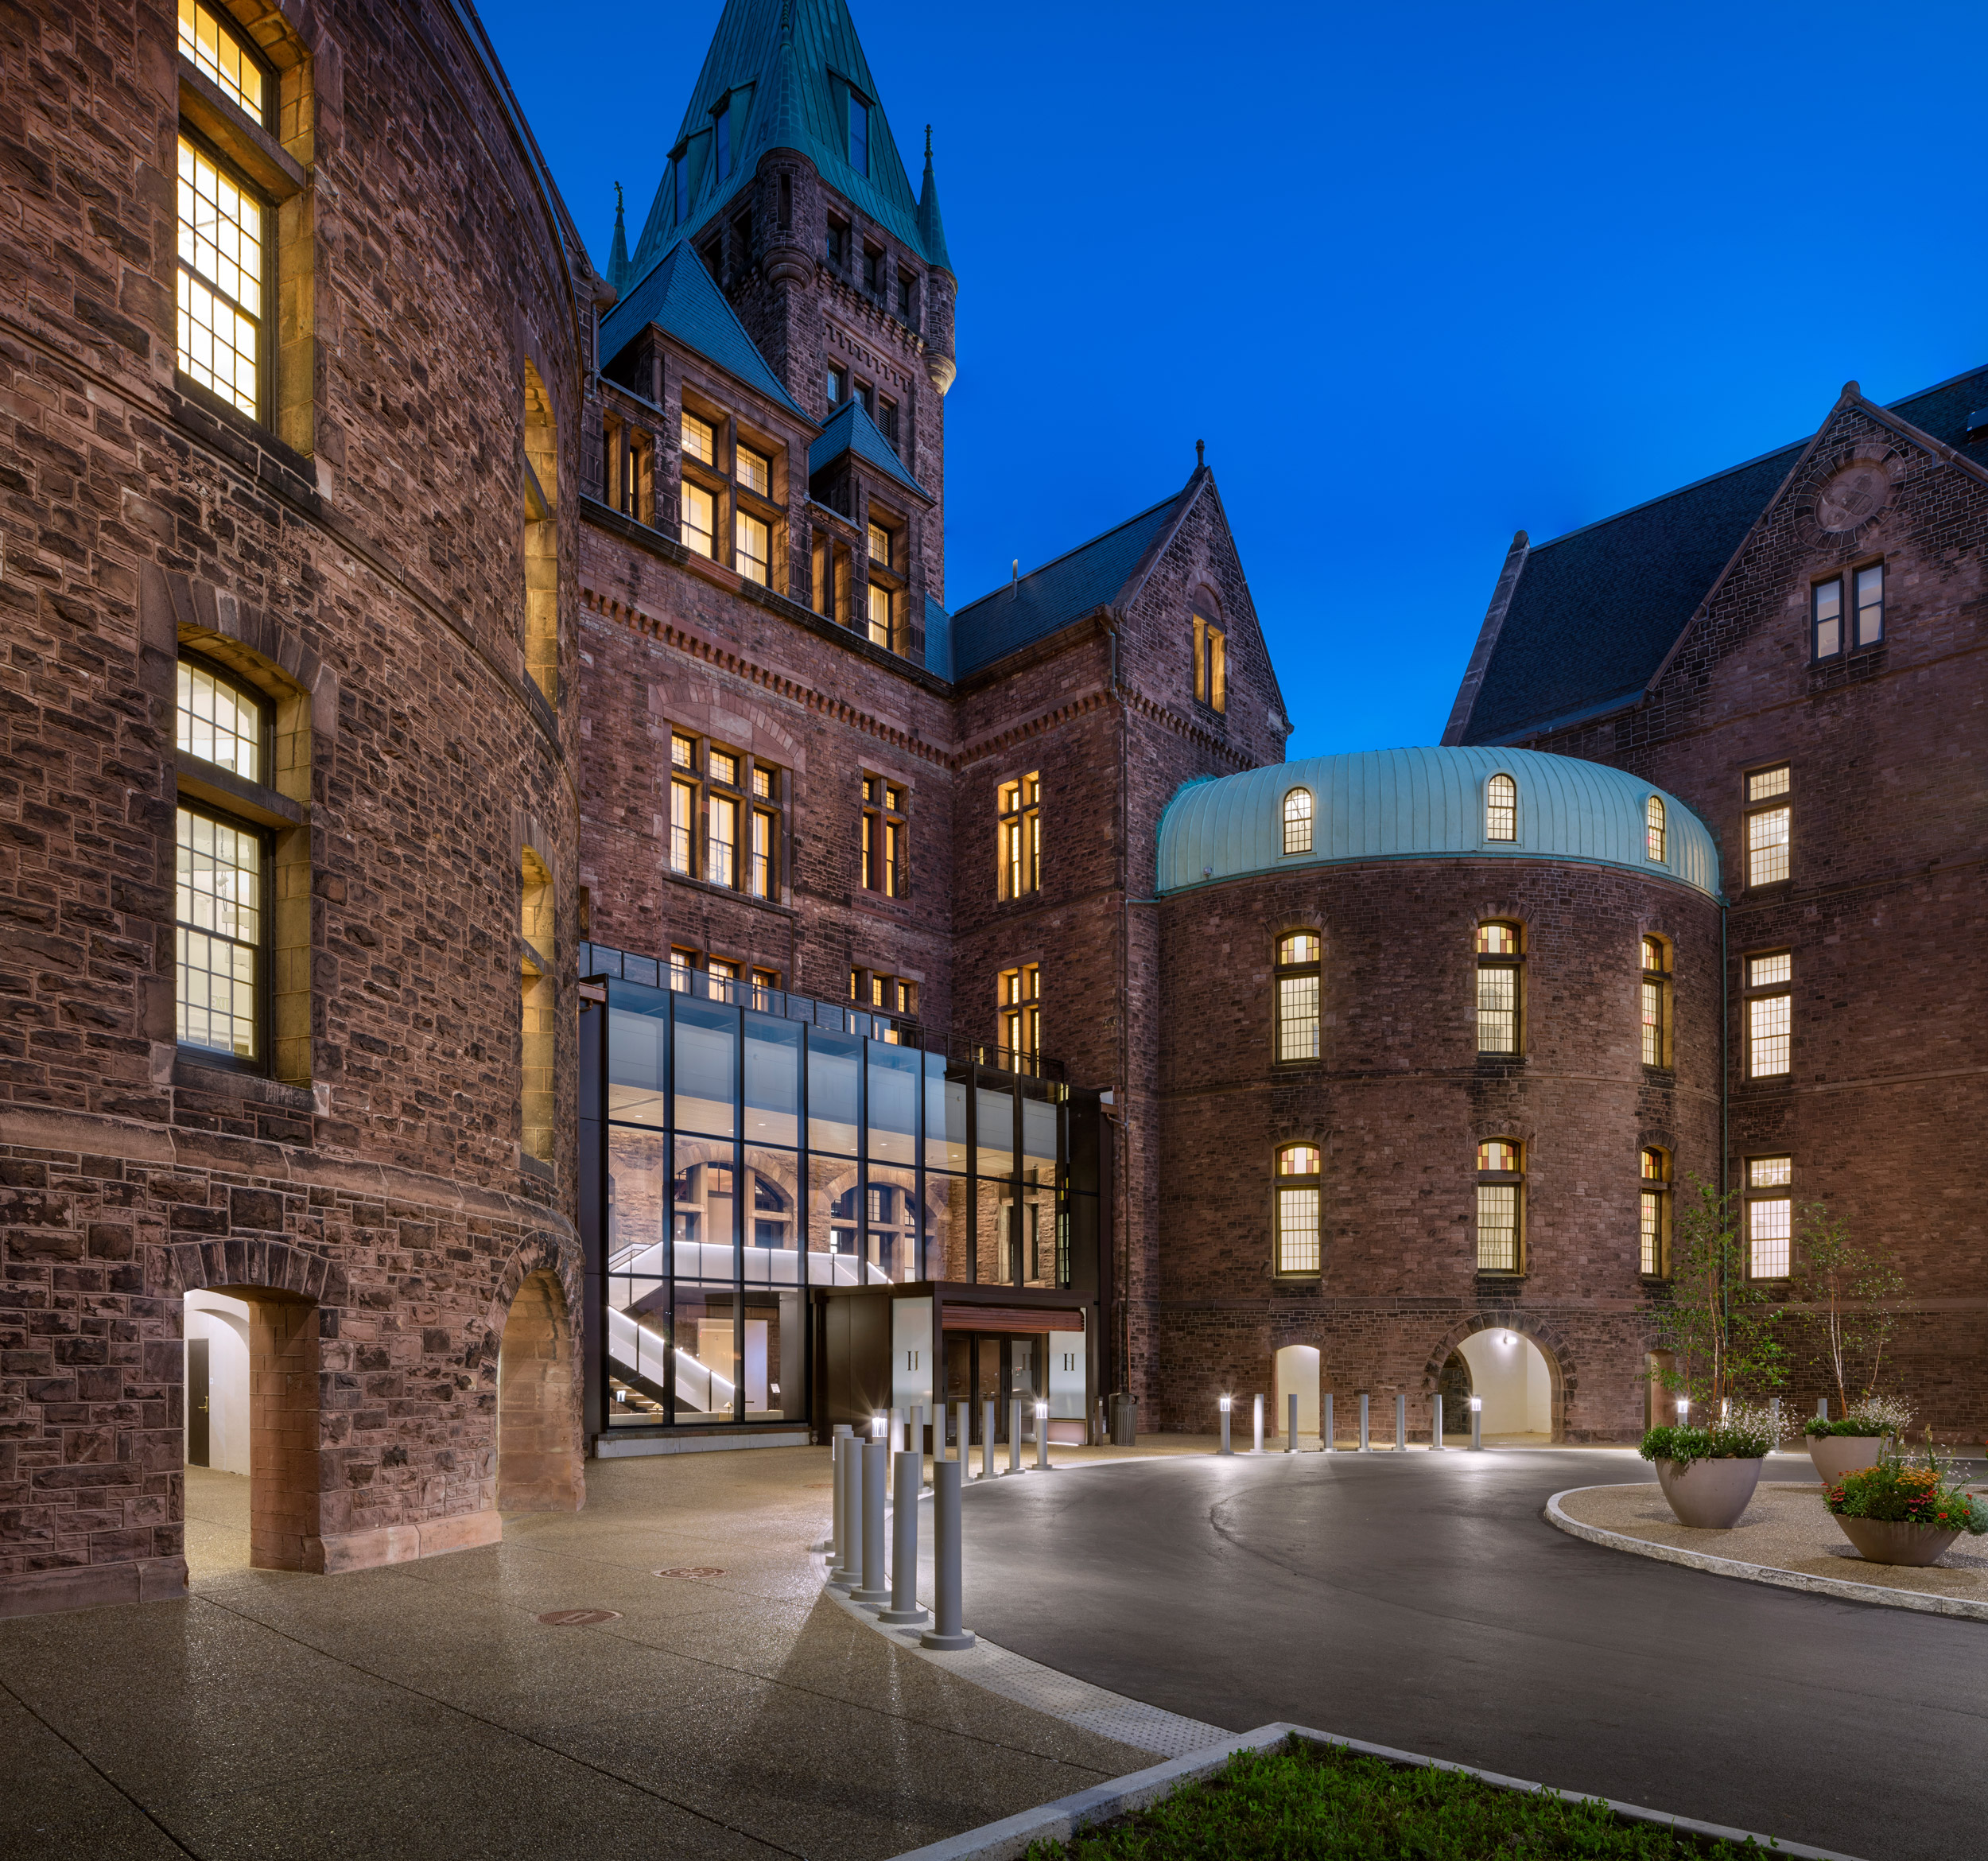 Architecture Honor Award: Richardson Olmsted Campus Renovation by Deborah Berke Partners, Flynn Battaglia Architects, Goody Clancy, and Andropogon Associates, in Buffalo, NY. Photo: Christopher Payne/ESTO.